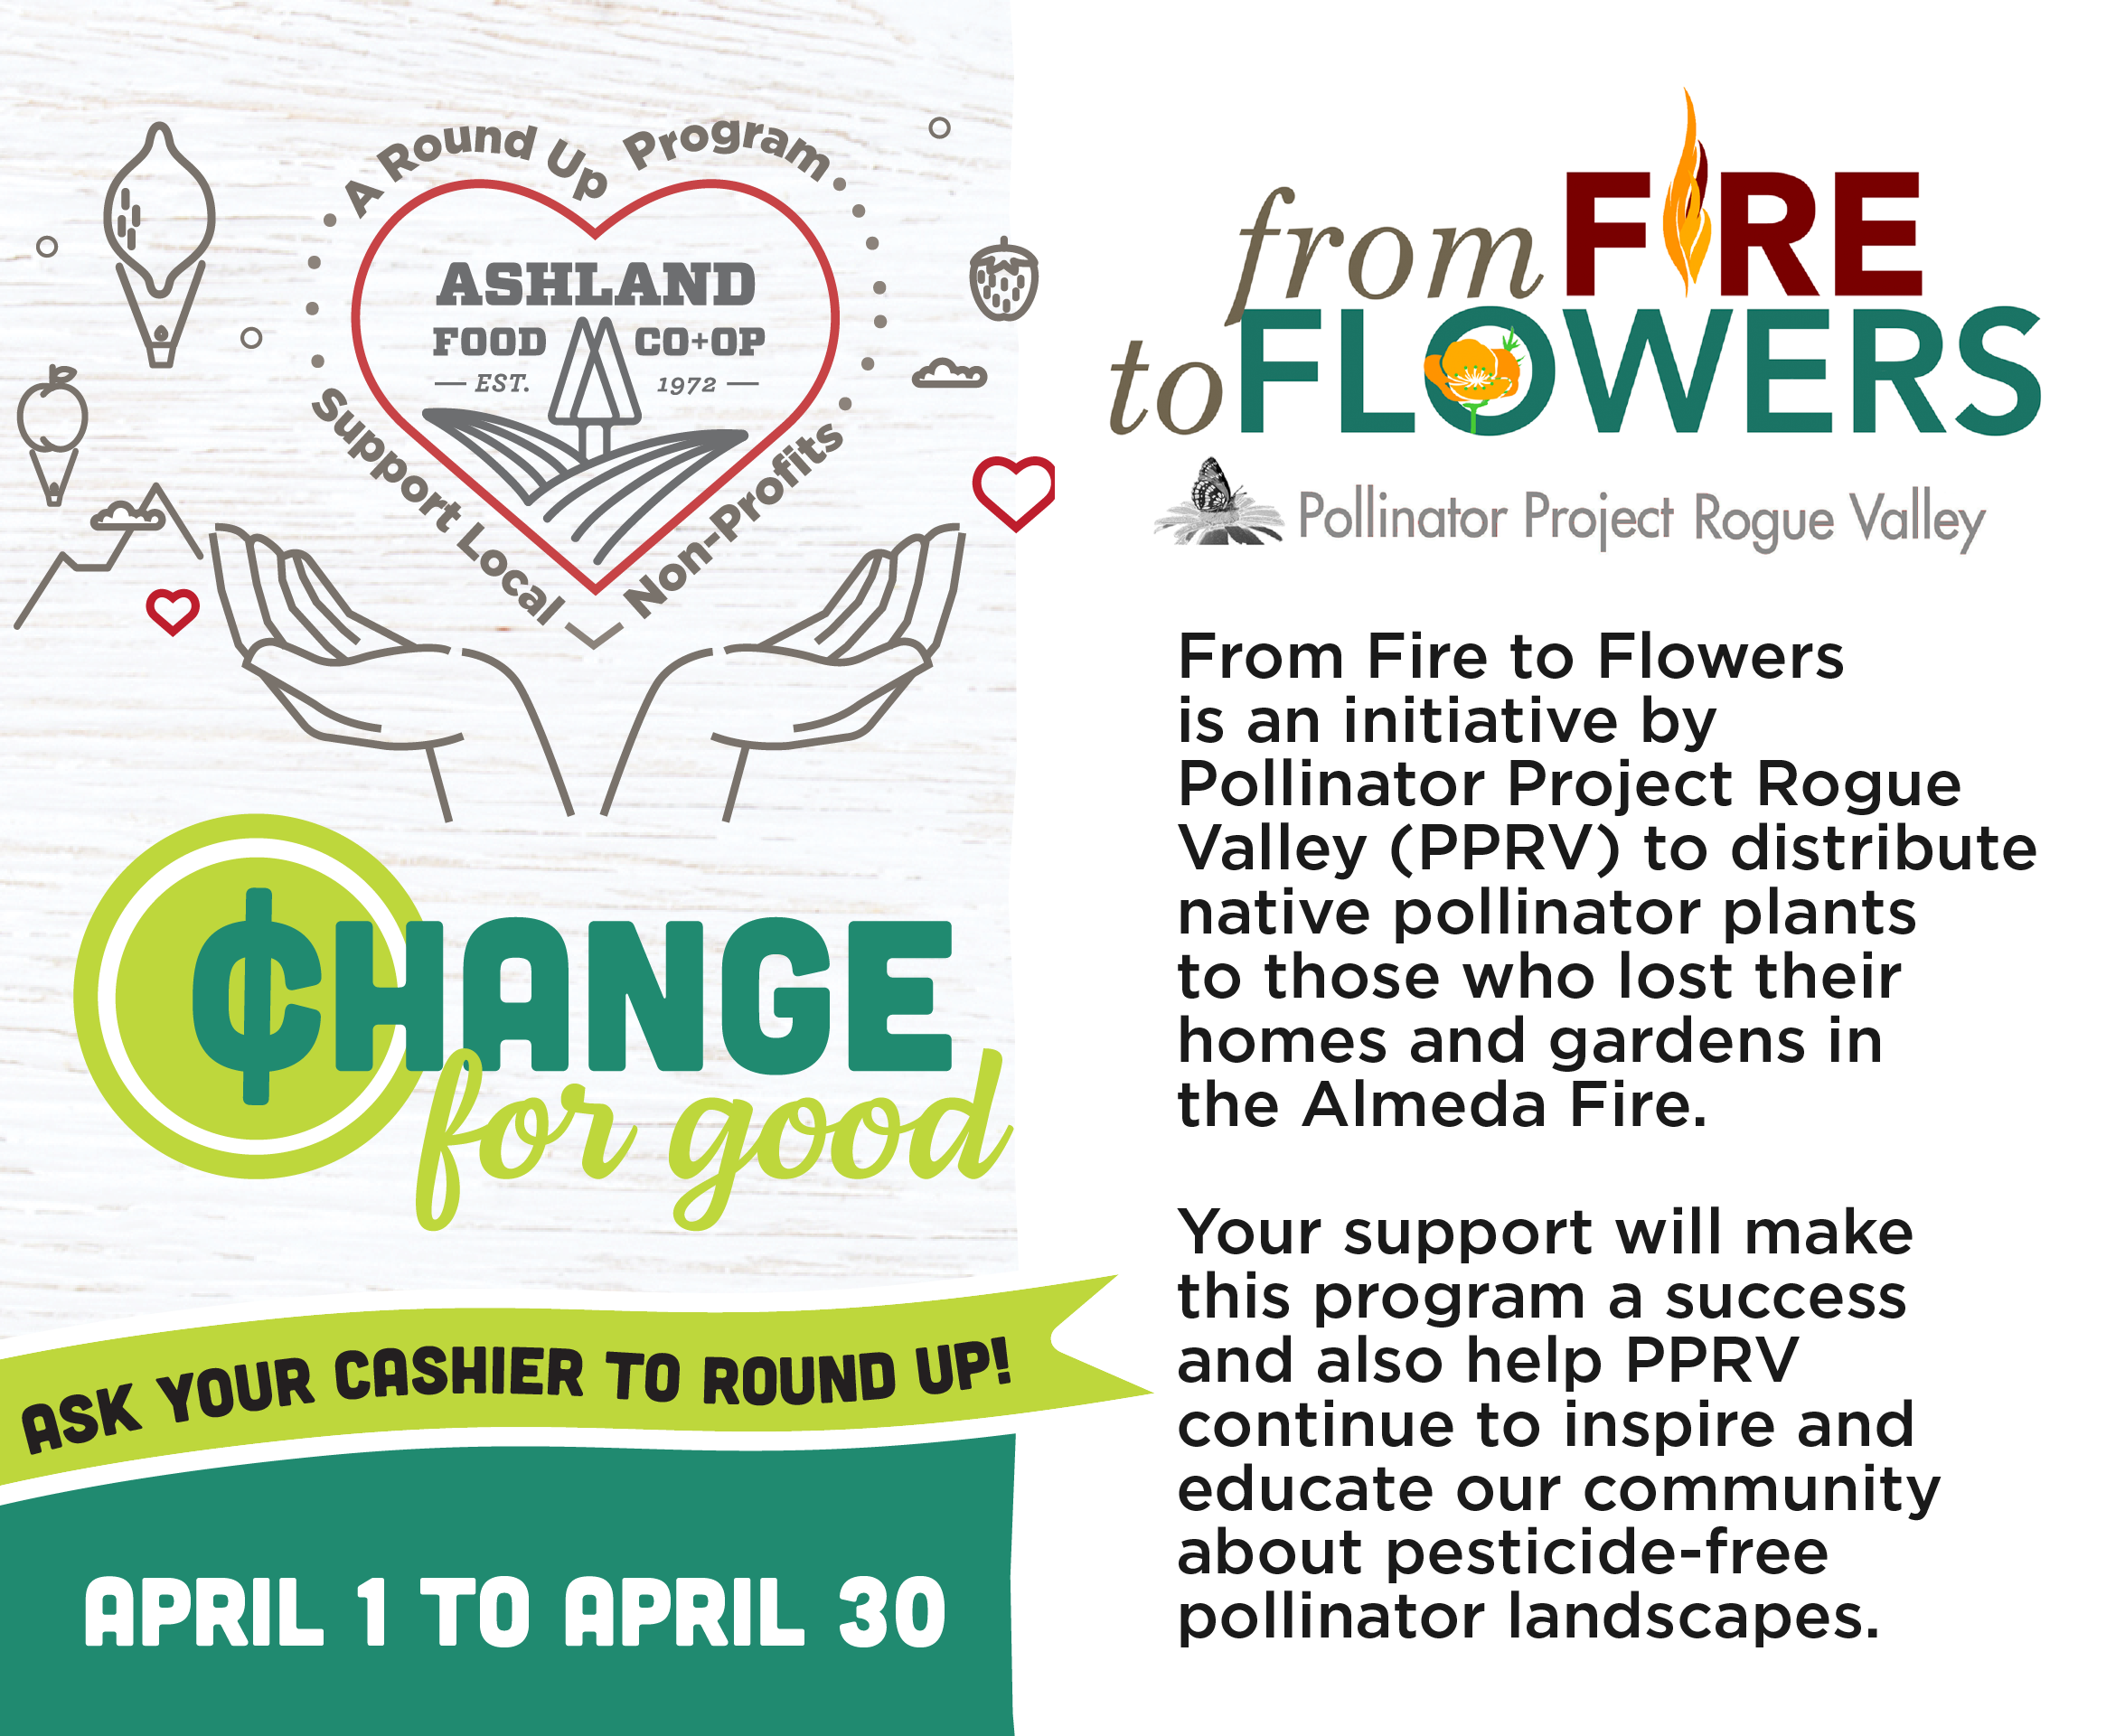 Change for Good From Fire to Flowers is an initiative by PPRV to distribute native pollinator plants to those who lost their homes and gardens in the Almeda Fire.